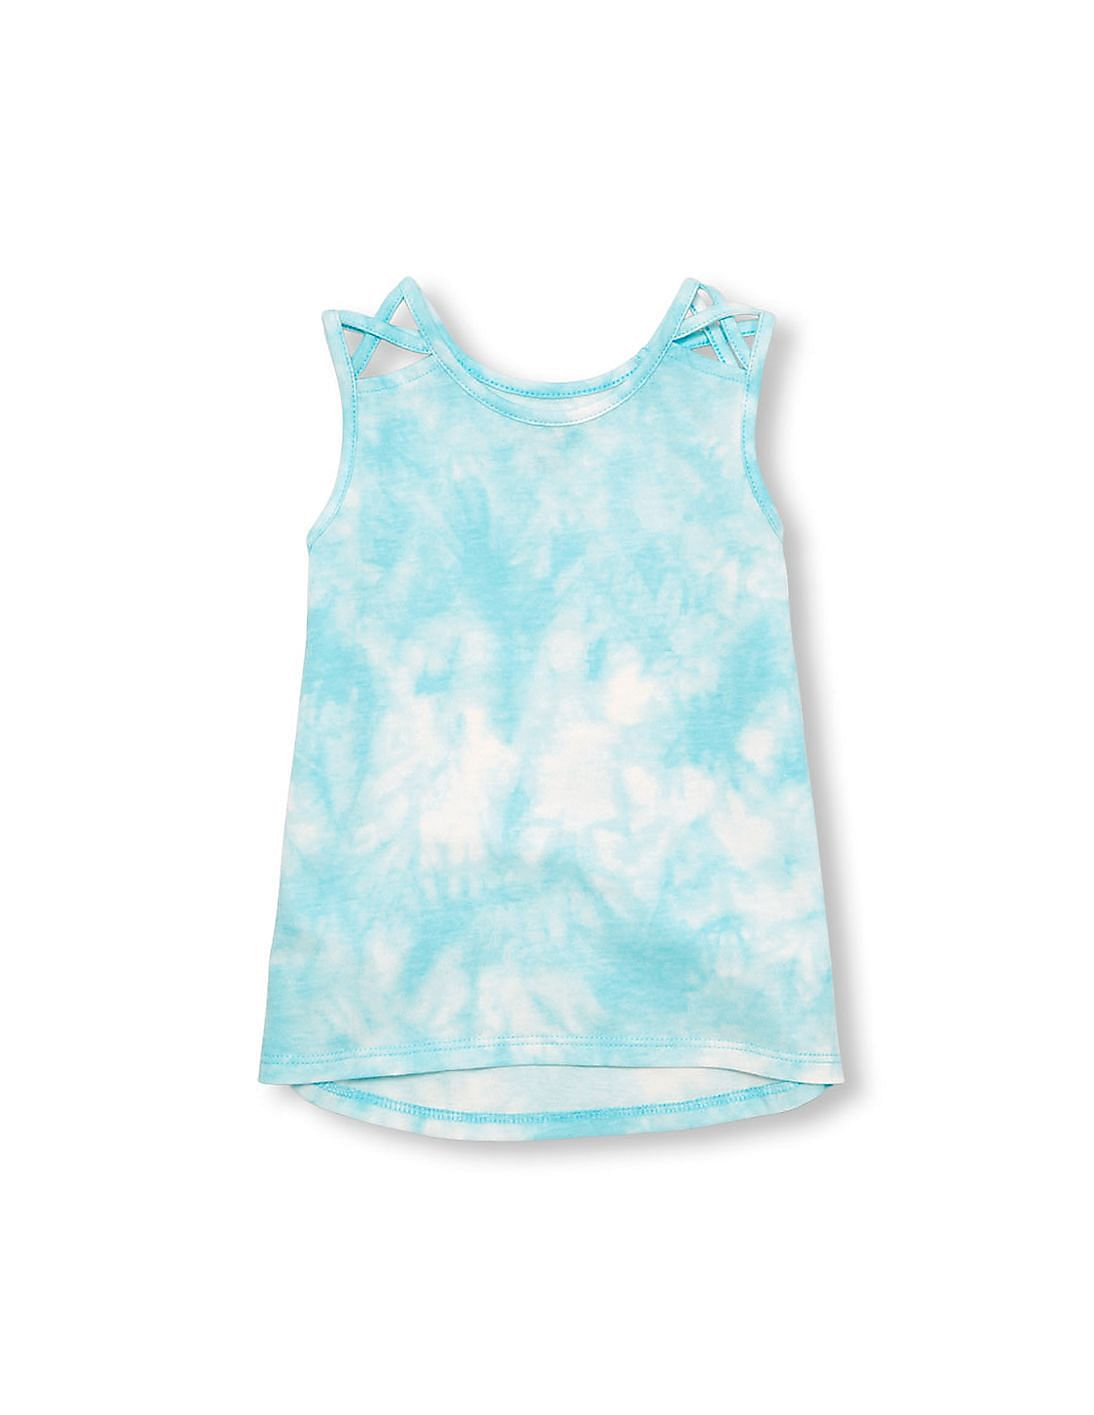 1ec5114c70dd1 Buy Toddler Girl Toddler Girl Matchables Sleeveless Cutout Shoulder Tie Dye  Tank Top online at NNNOW.com